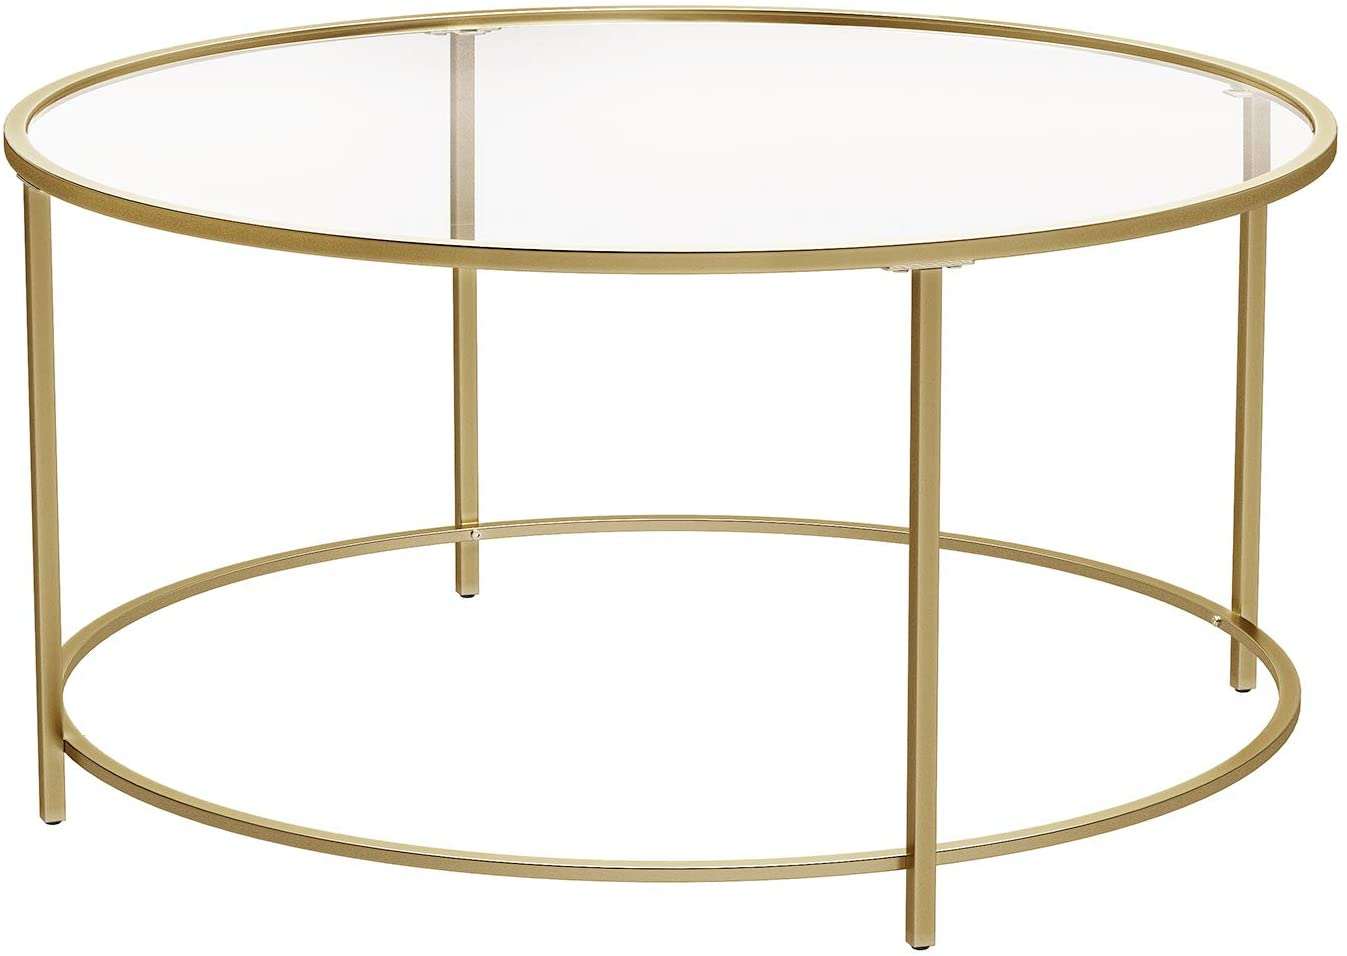 Shop hawkinswoodshop.com for solid wood & metal modern, traditional, contemporary, industrial, custom, rustic, and farmhouse furniture including our Round Glass Gold Colored Coffee Table.  Ask about our free nationwide delivery service.